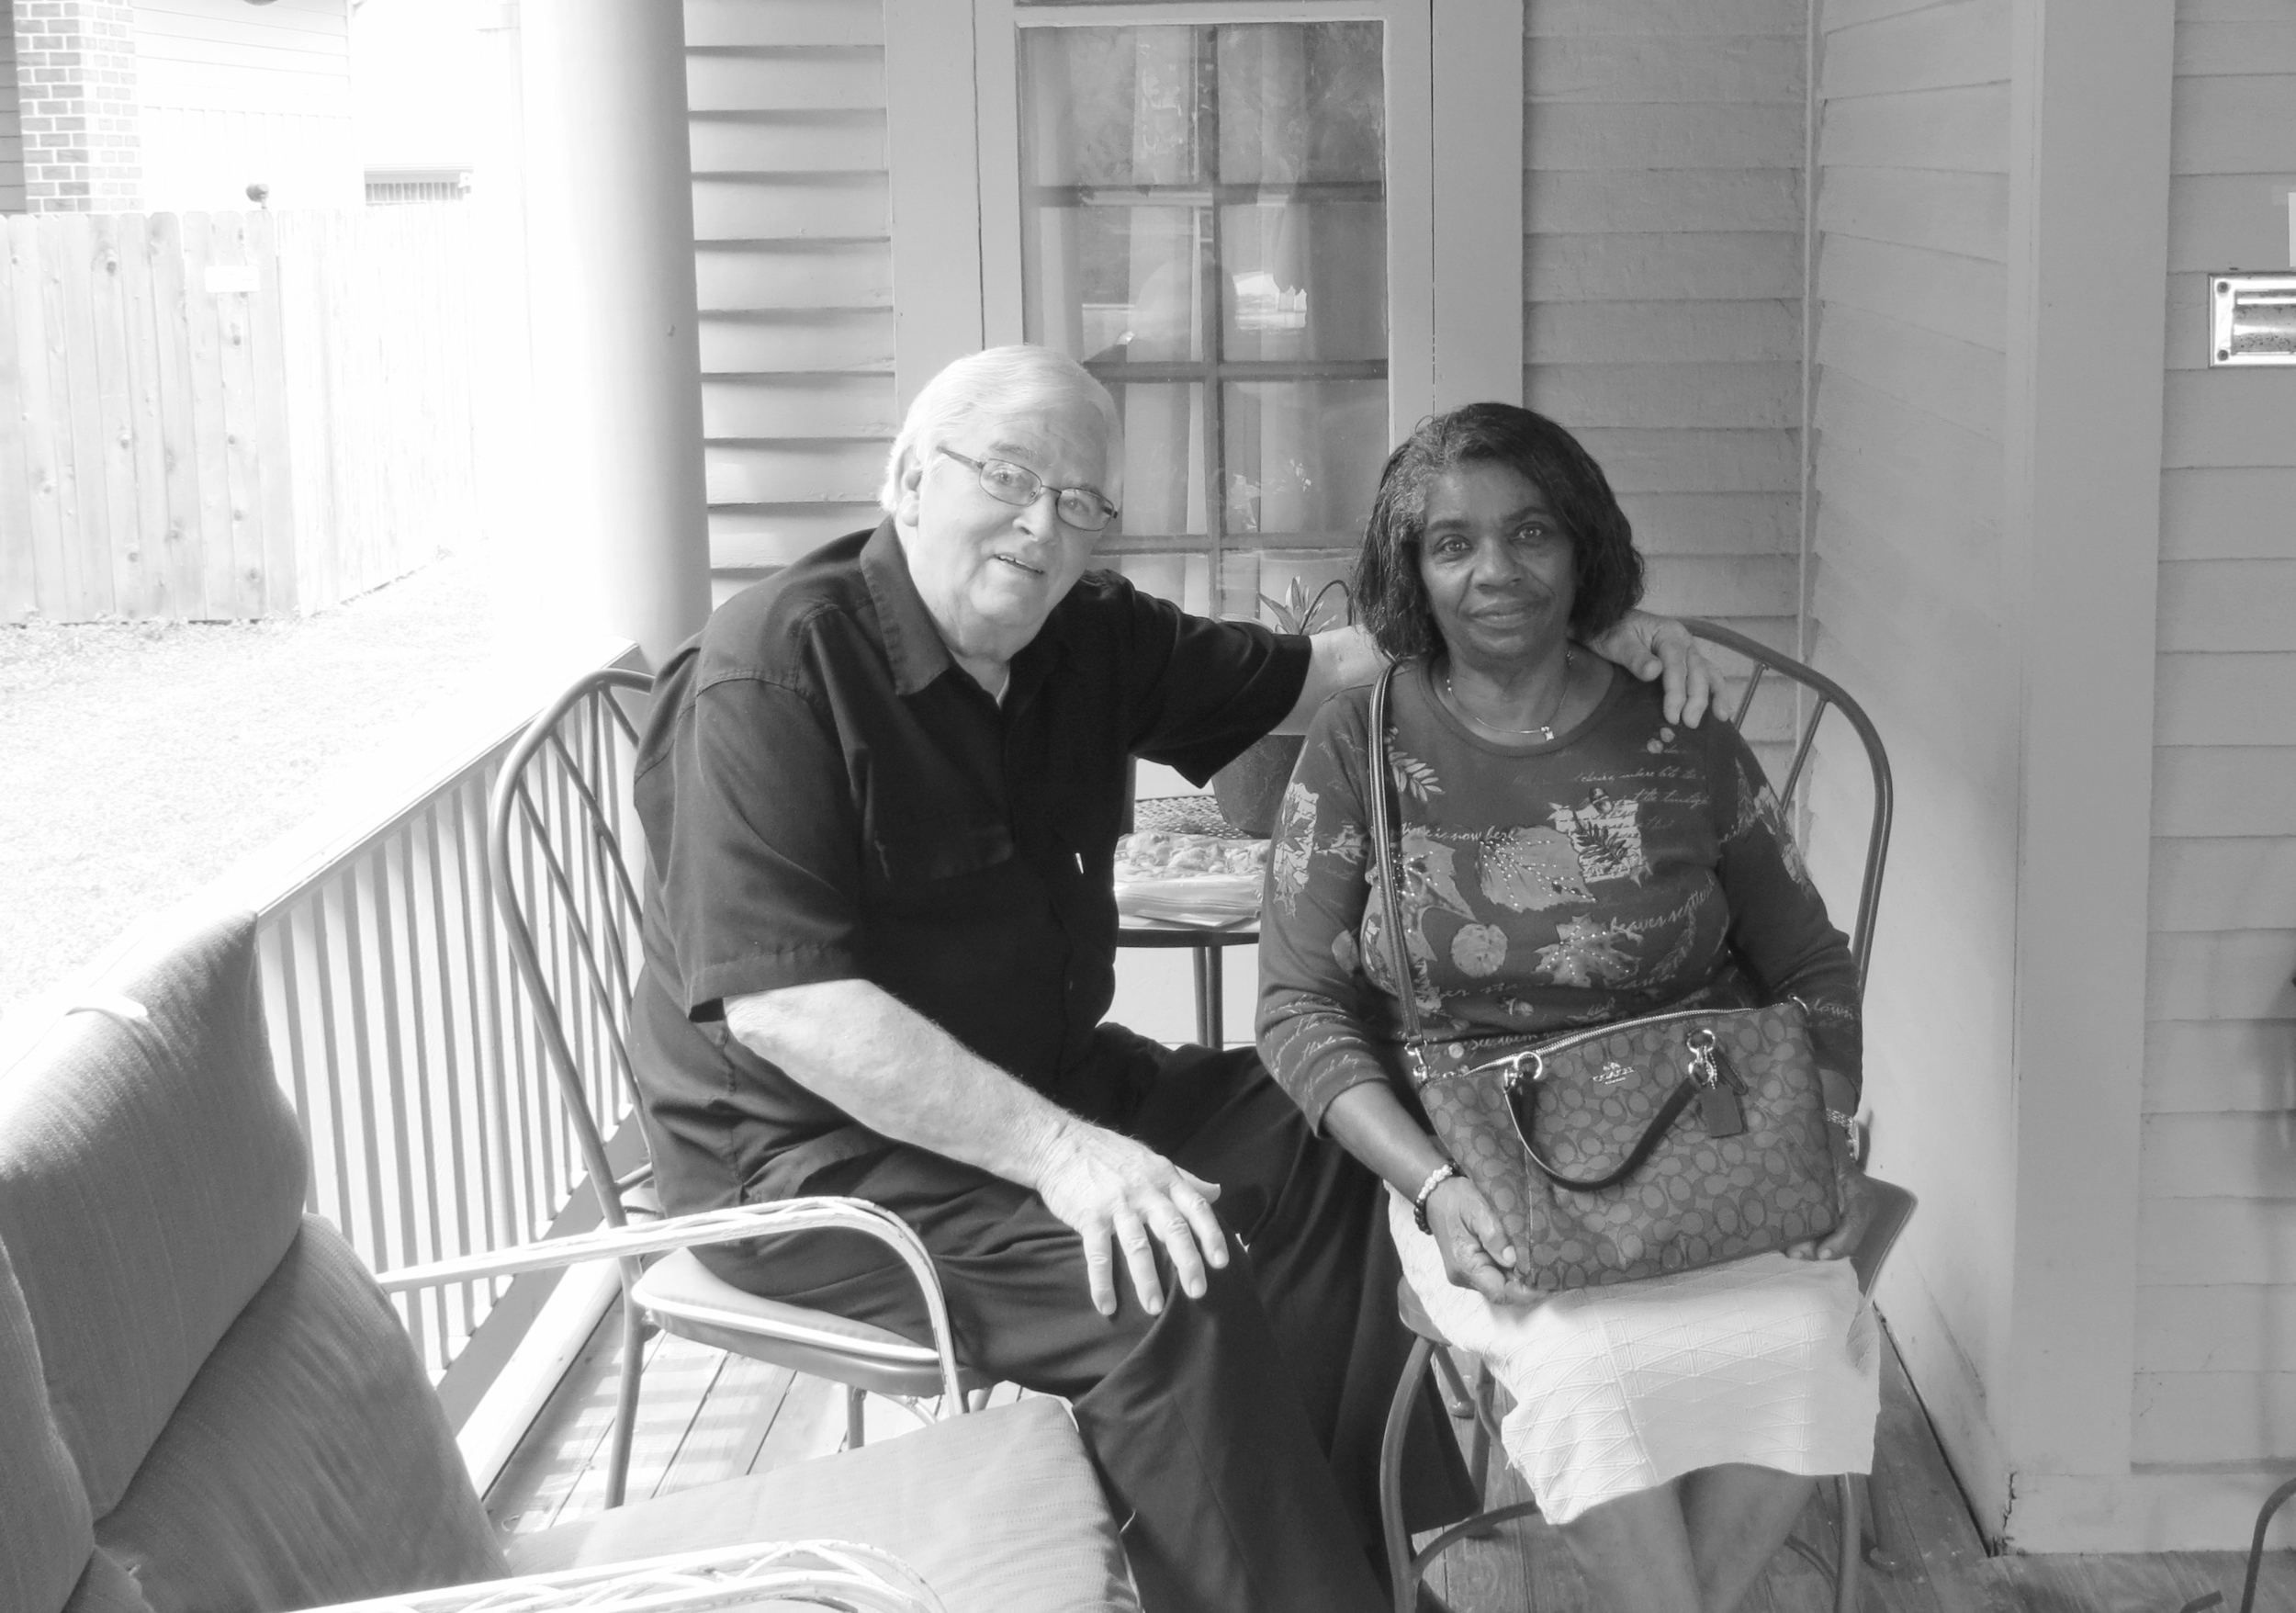 Lloyd & Lena Sprowl on the front porch of their historic Old Northside home.